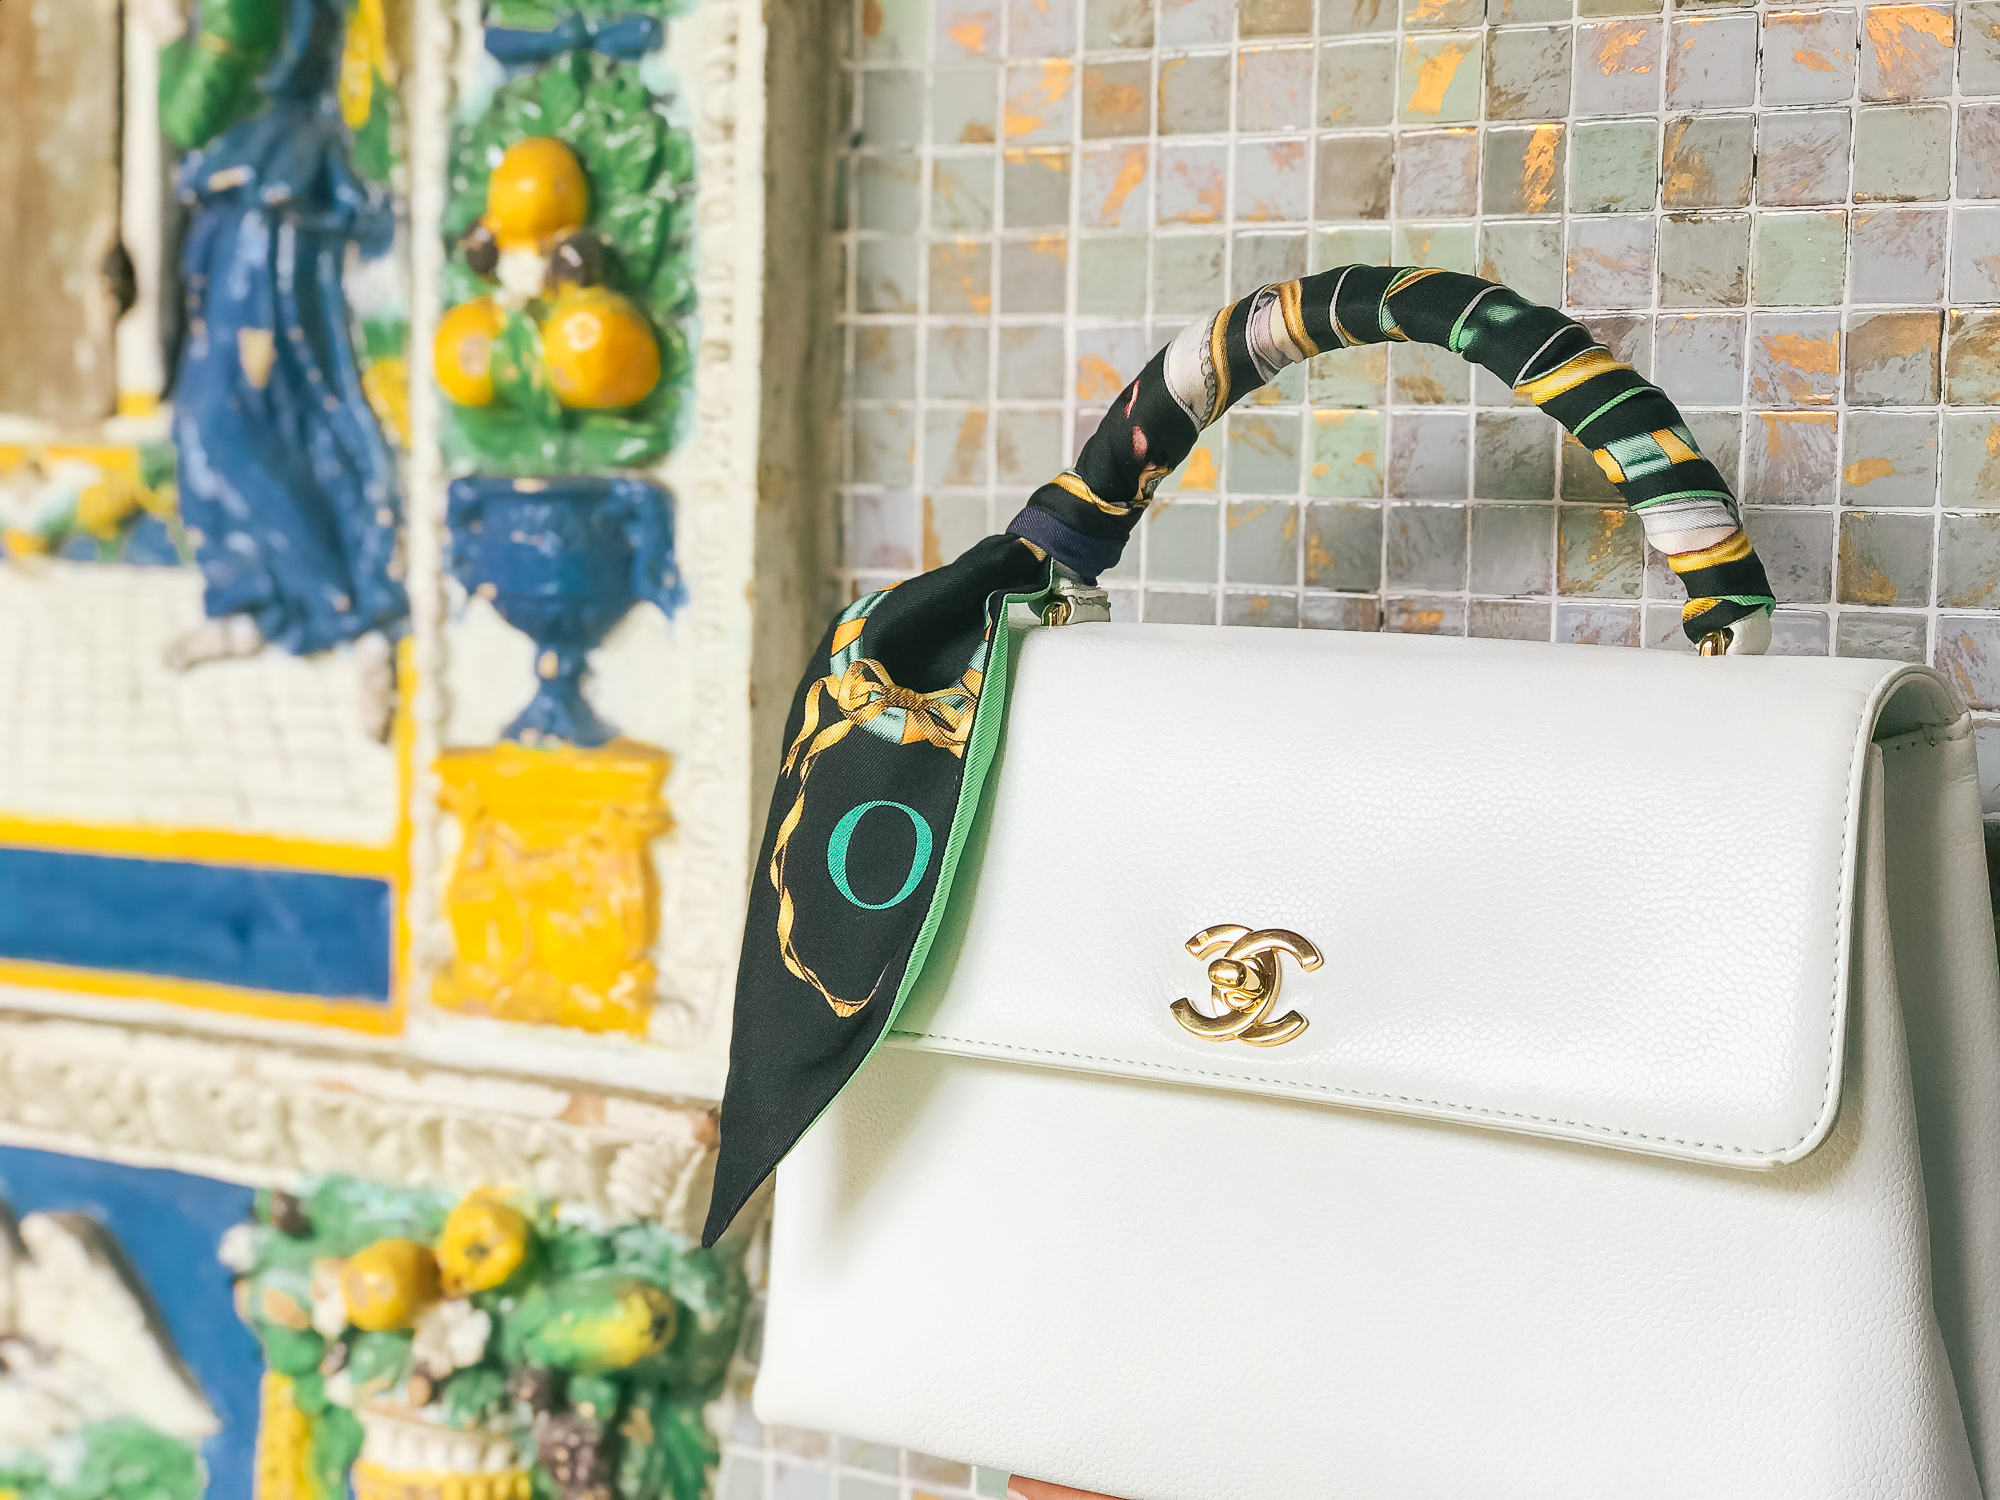 Tips for White Bags and My New Chanel